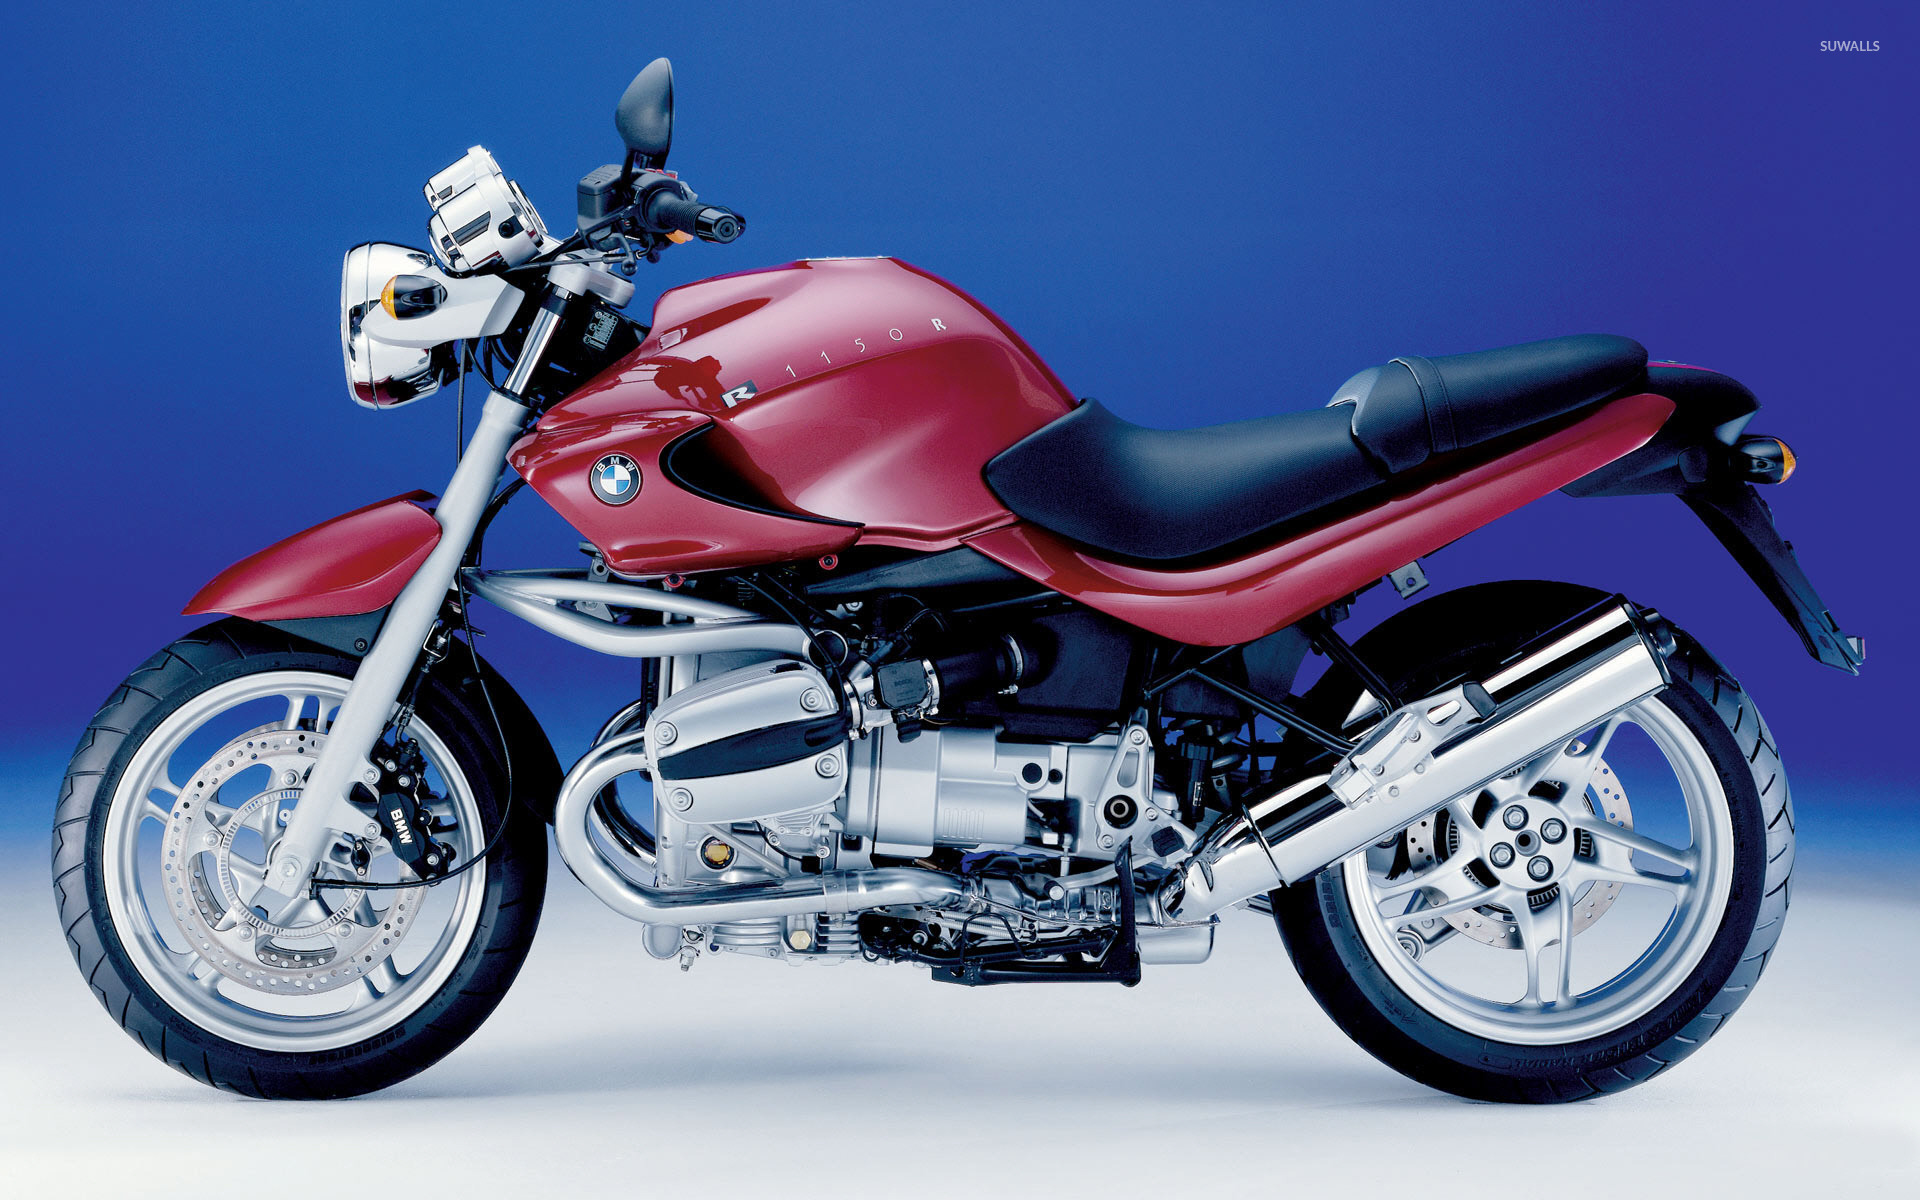 BMW R1150R Wallpaper  Motorcycle Wallpapers 9278